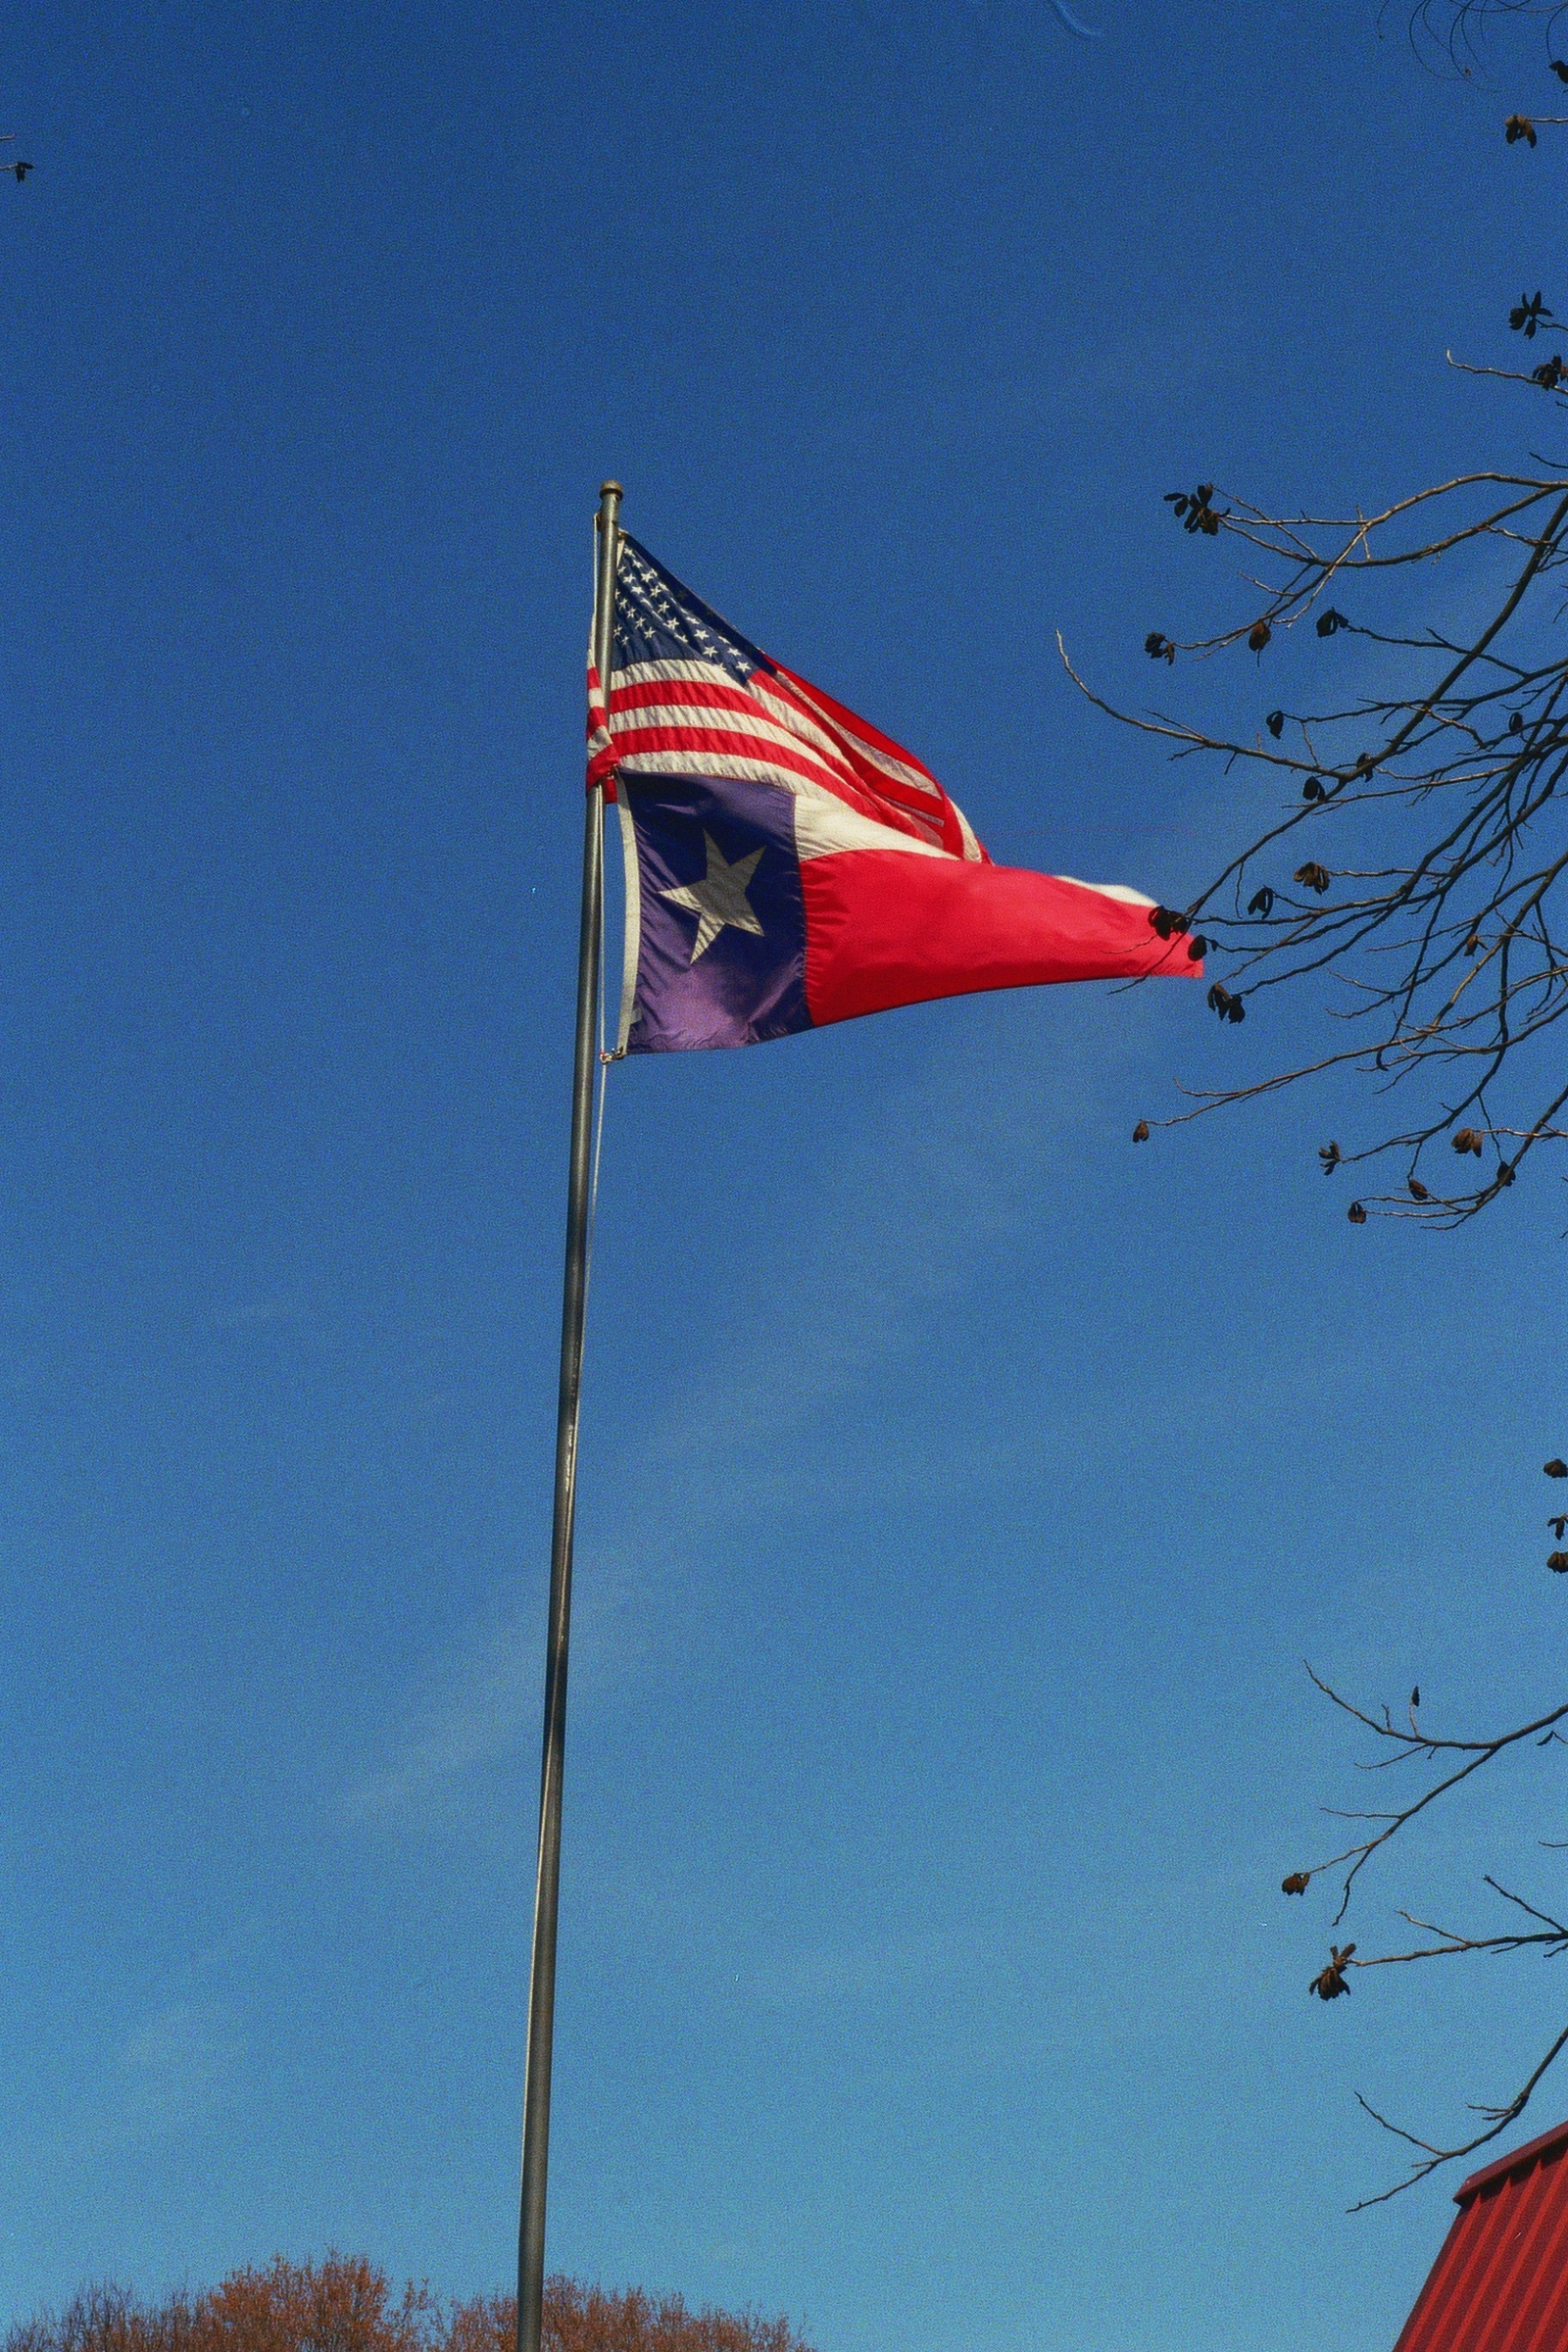 The Texan flag. Quite possibly flown with more frequency and pride than any other state flag in America, and rightly so.  Austin, TX